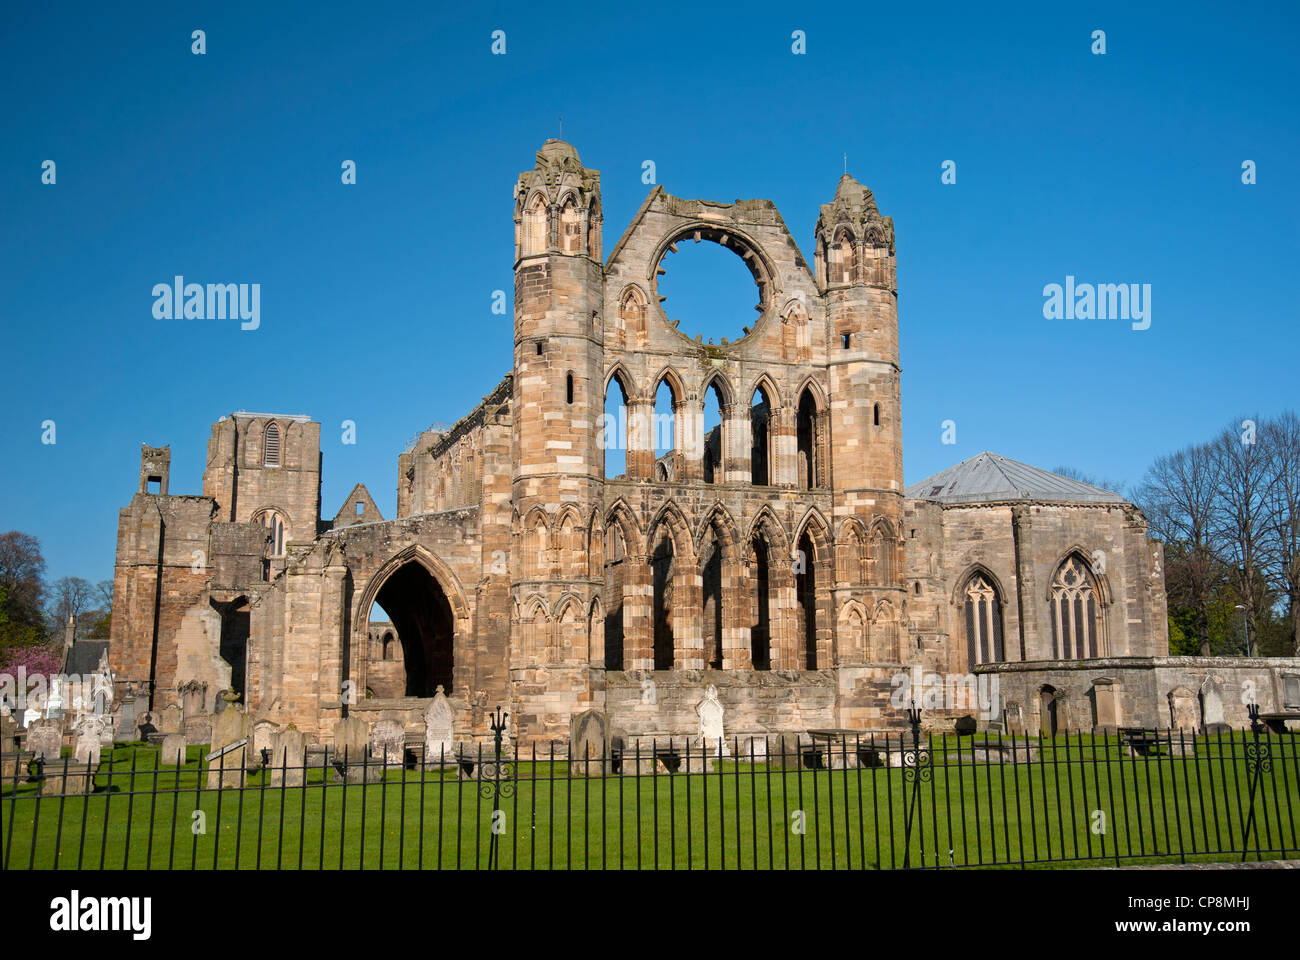 Elgin Cathedral, Moray, Grampian Region. Scotland.  SCO 8213 Stock Photo